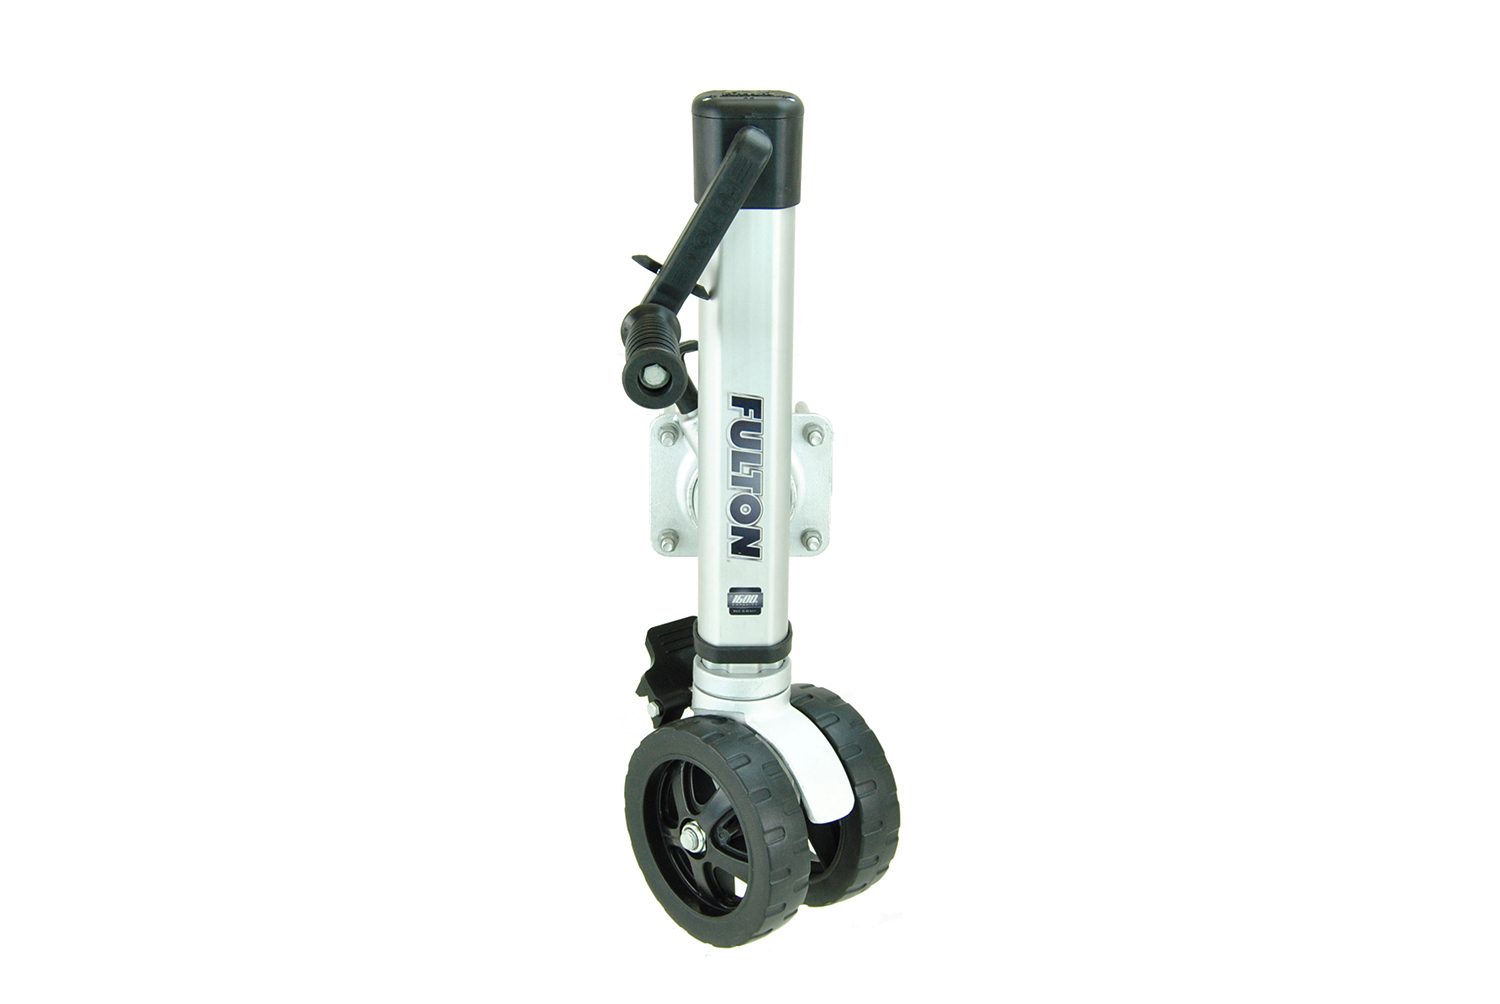 Bolt On Swivel Trailer Jack